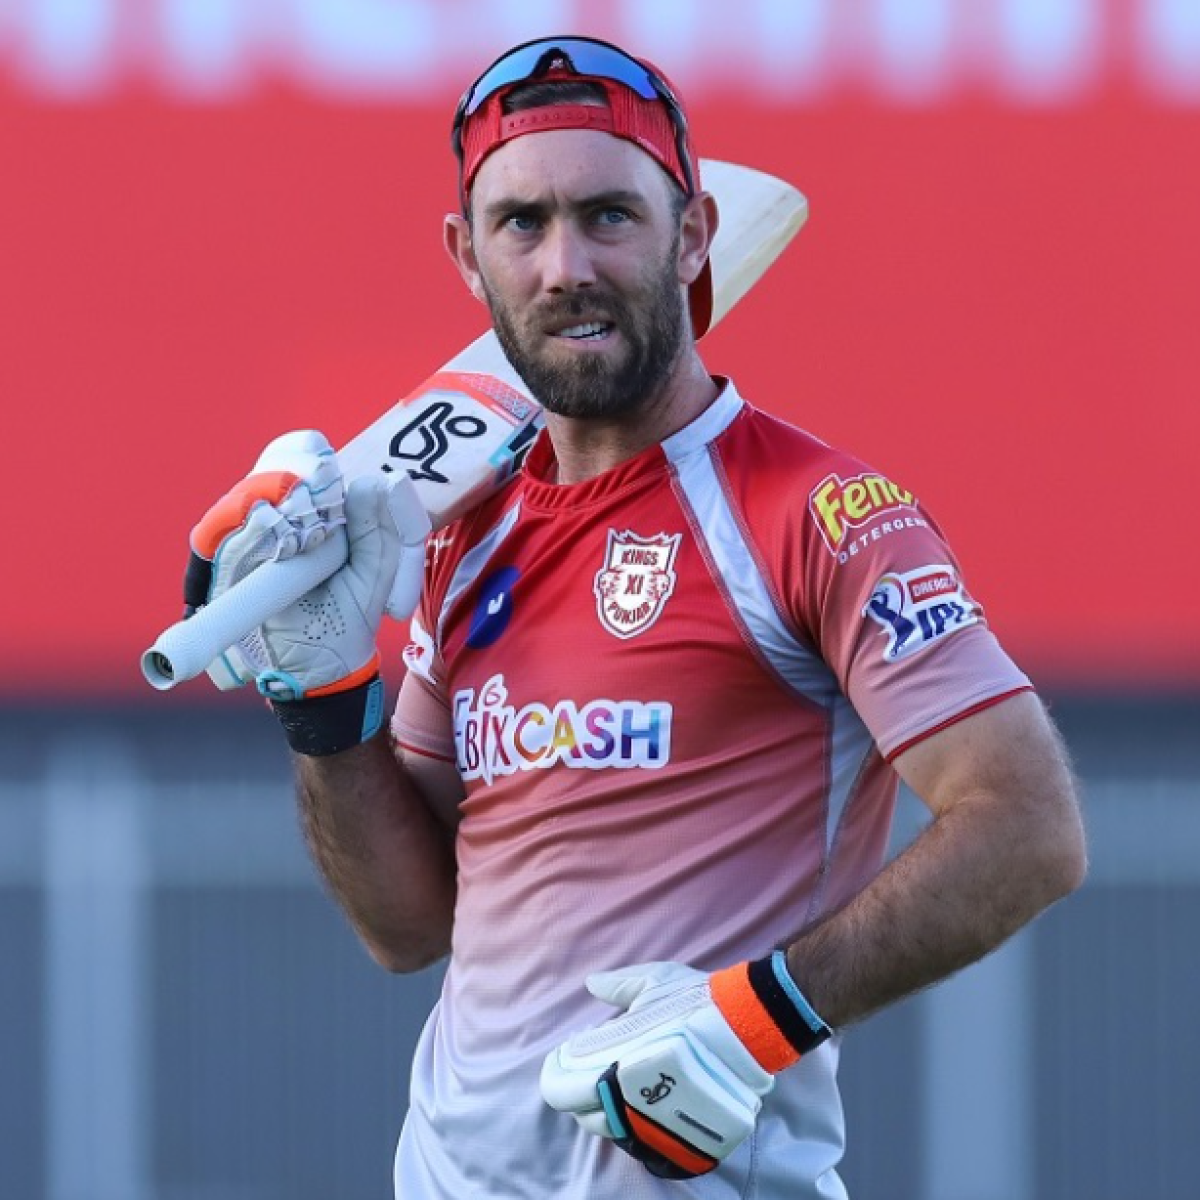 'Outspoken with his dislike': Glenn Maxwell takes Virender Sehwag's criticism with a 'grain of salt'